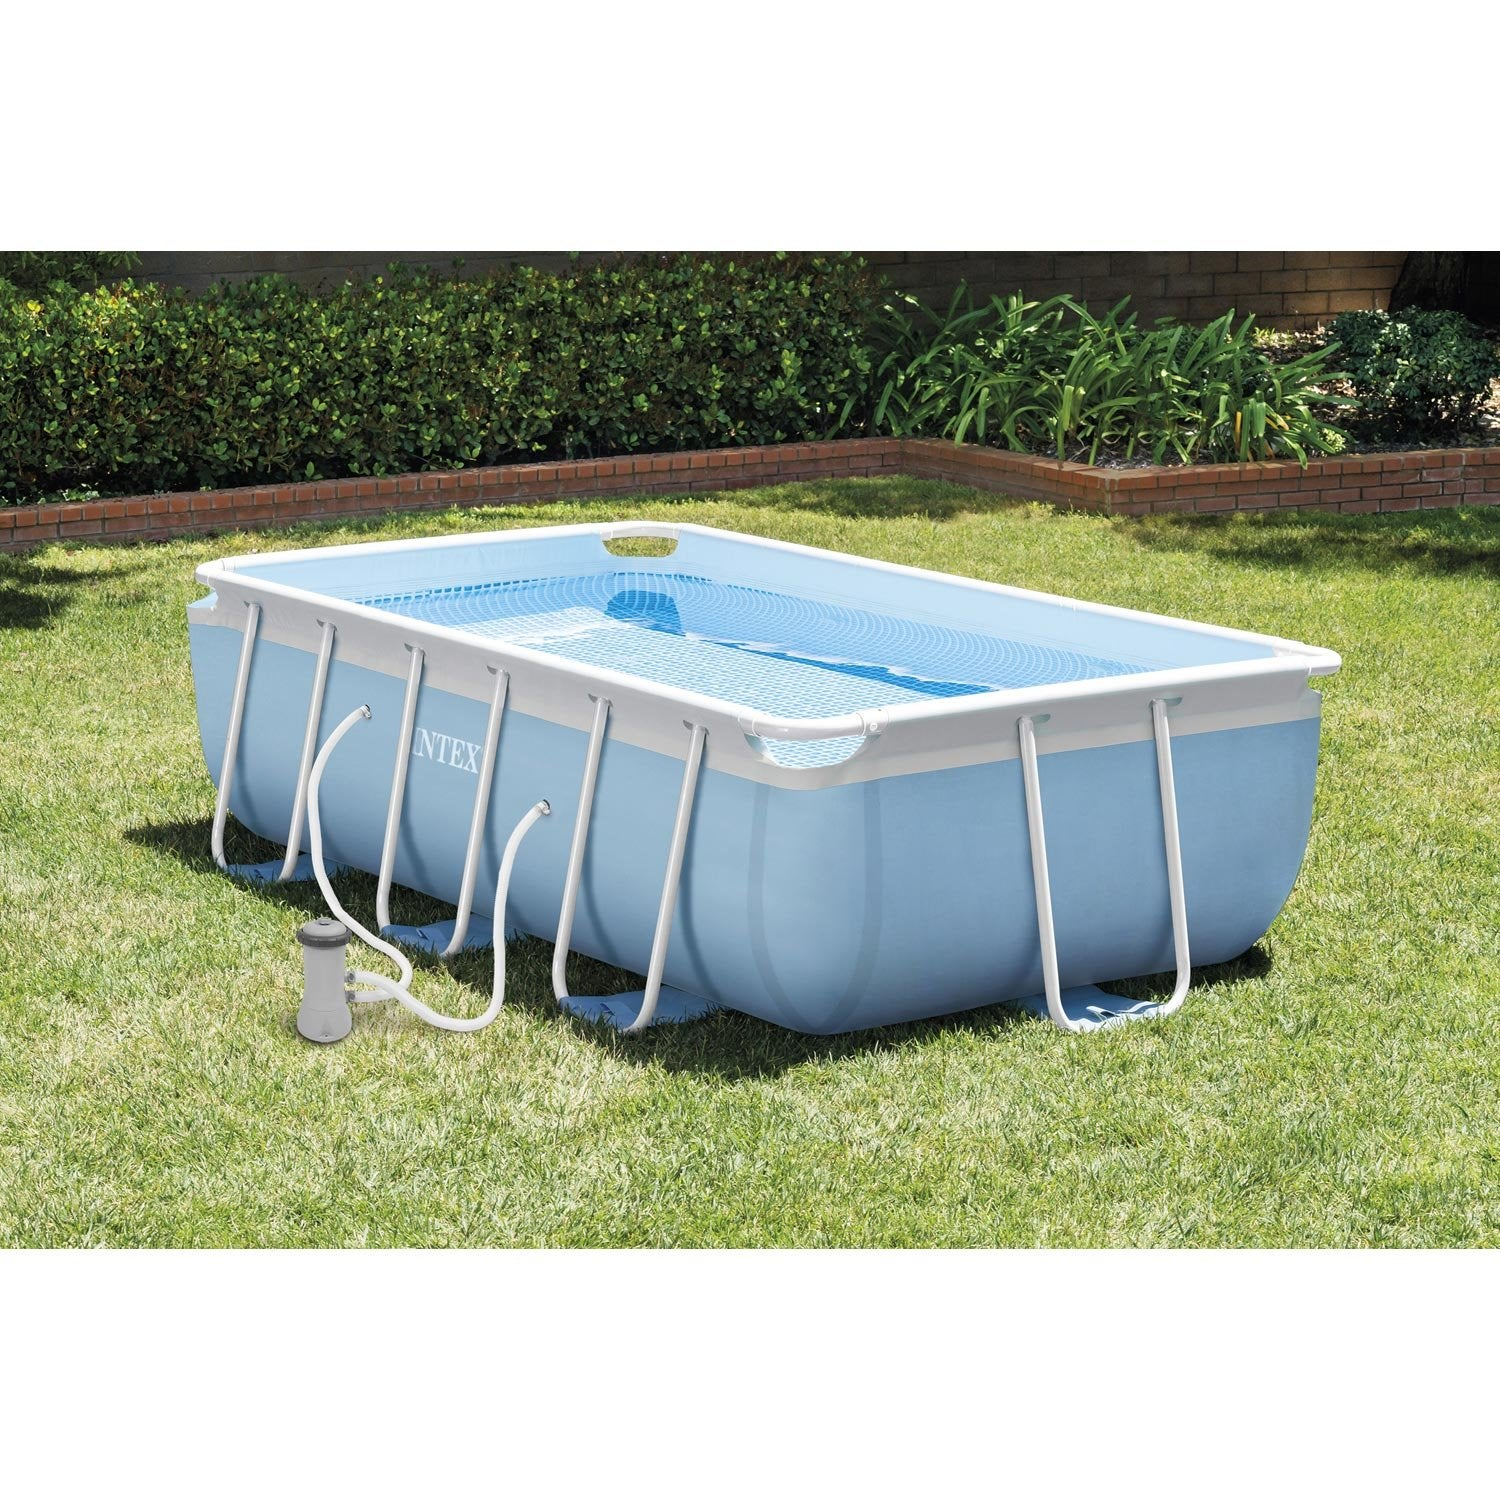 Piscine hors sol autoportante tubulaire prism frame intex for Piscine hors sol 1m30